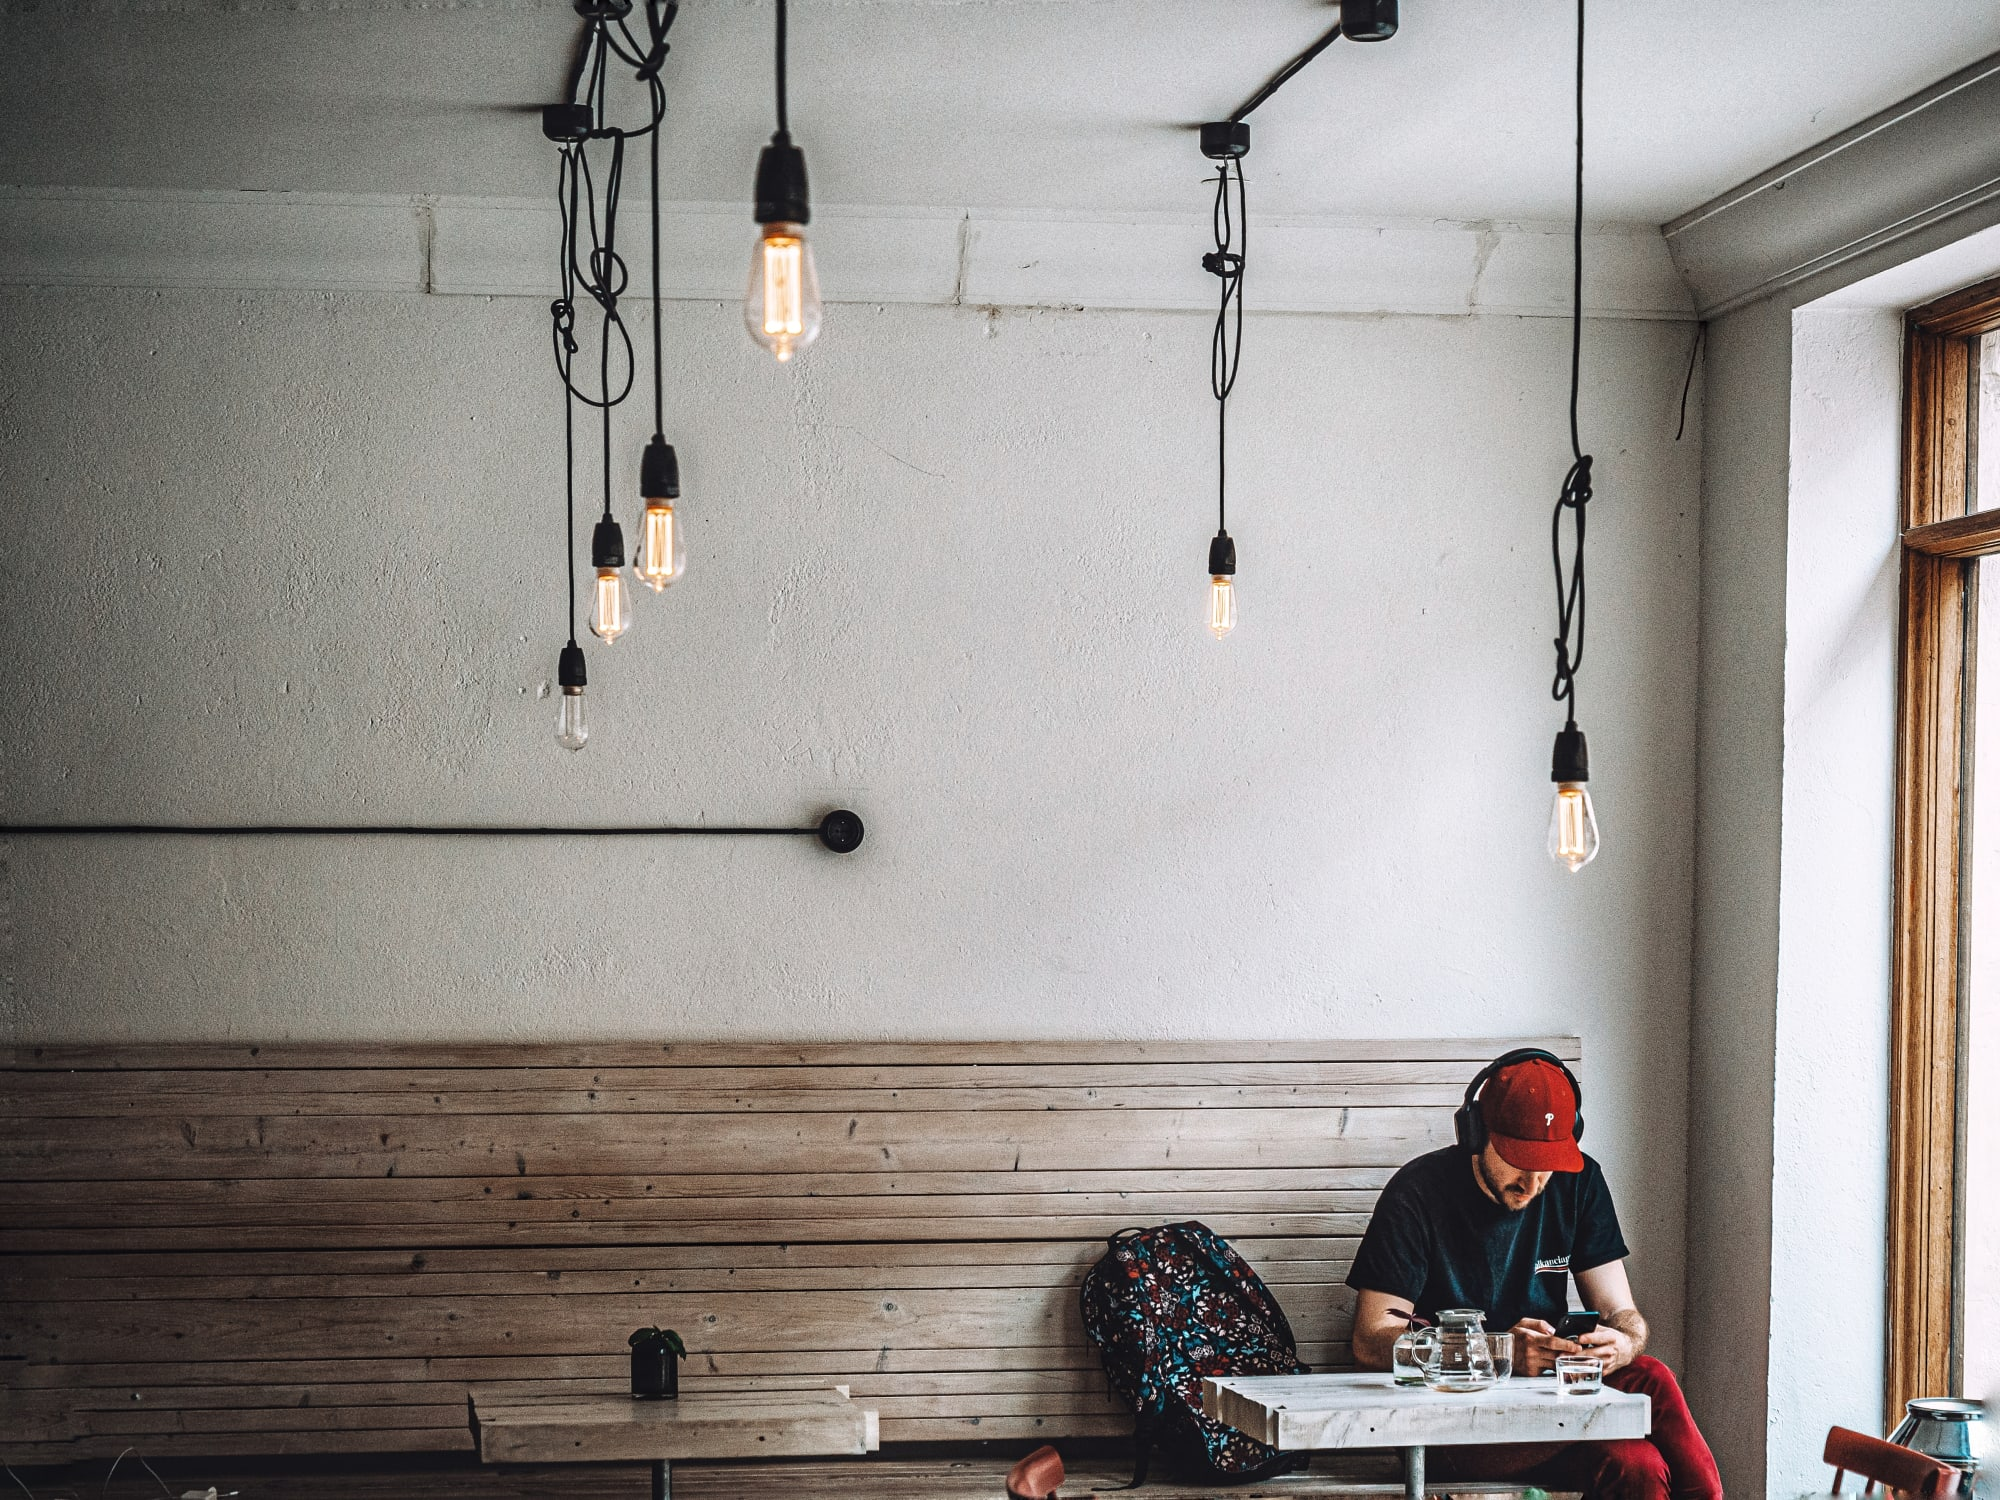 Djäkne Startup Studio in Malmö offers a coworking space for entrepreneurs, freelancers and people who just want to change working environment.